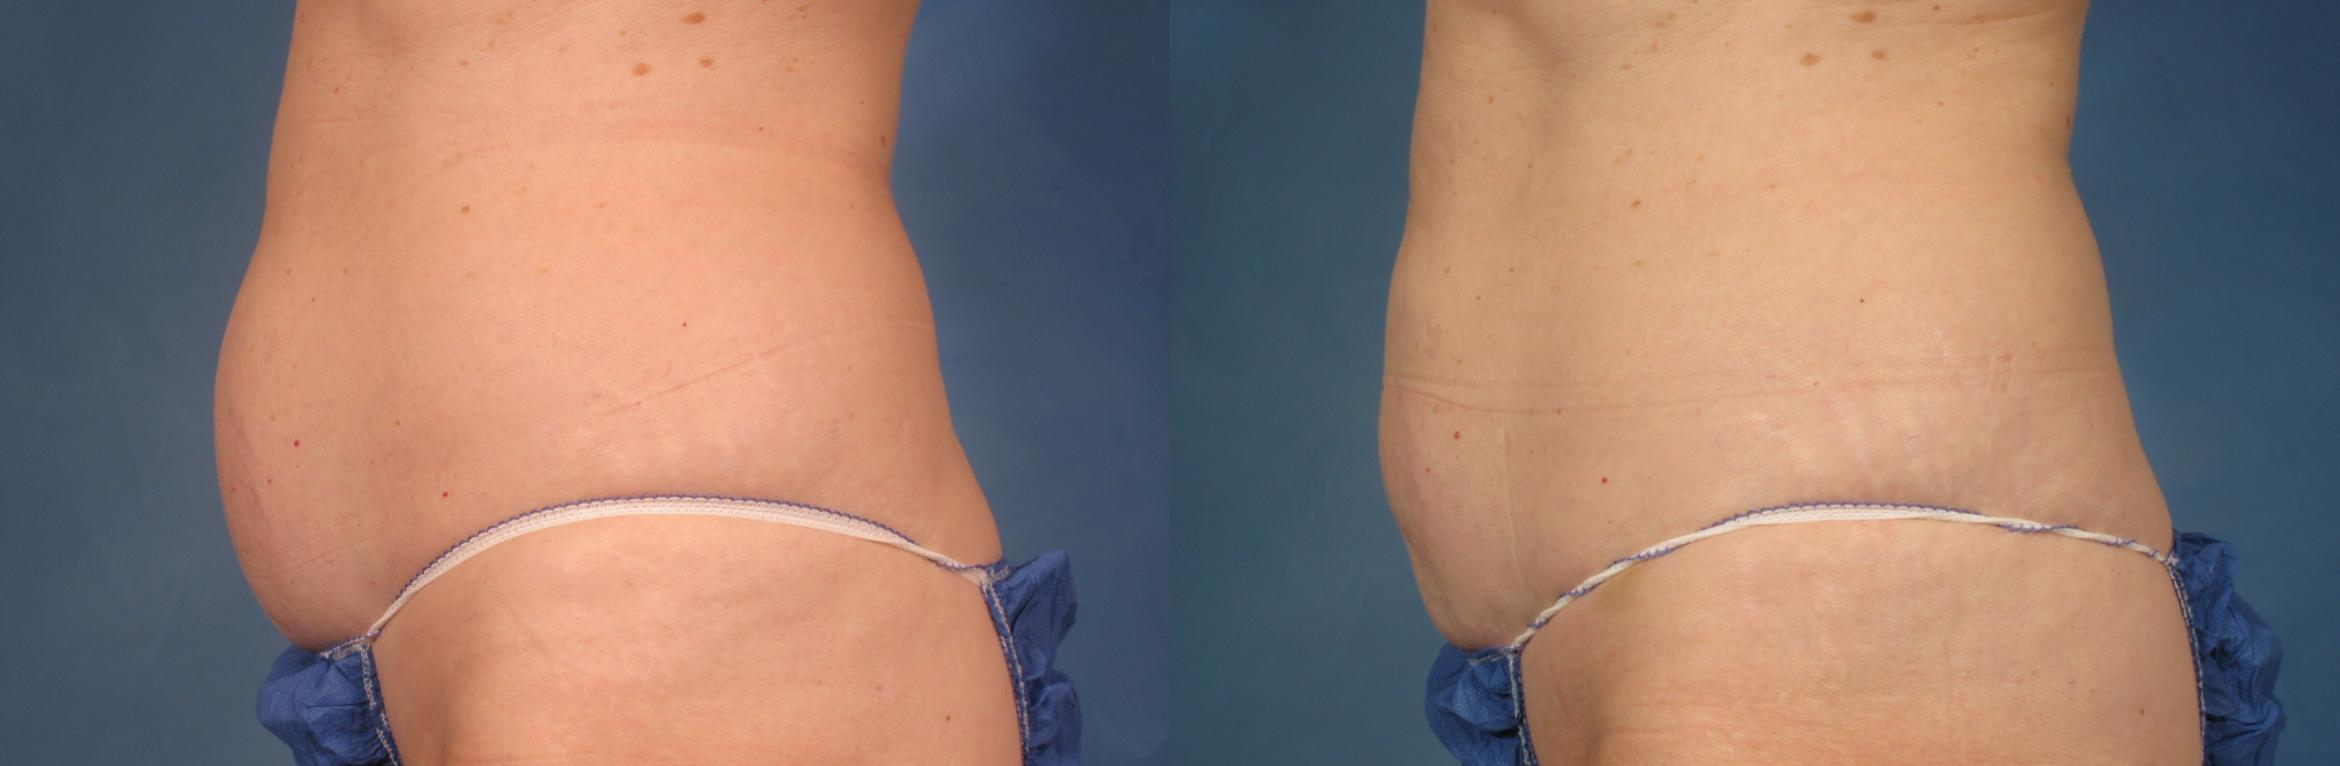 CoolSculpting® Case 213 Before & After View #1 | Naples, FL | Kent V. Hasen, M.D.